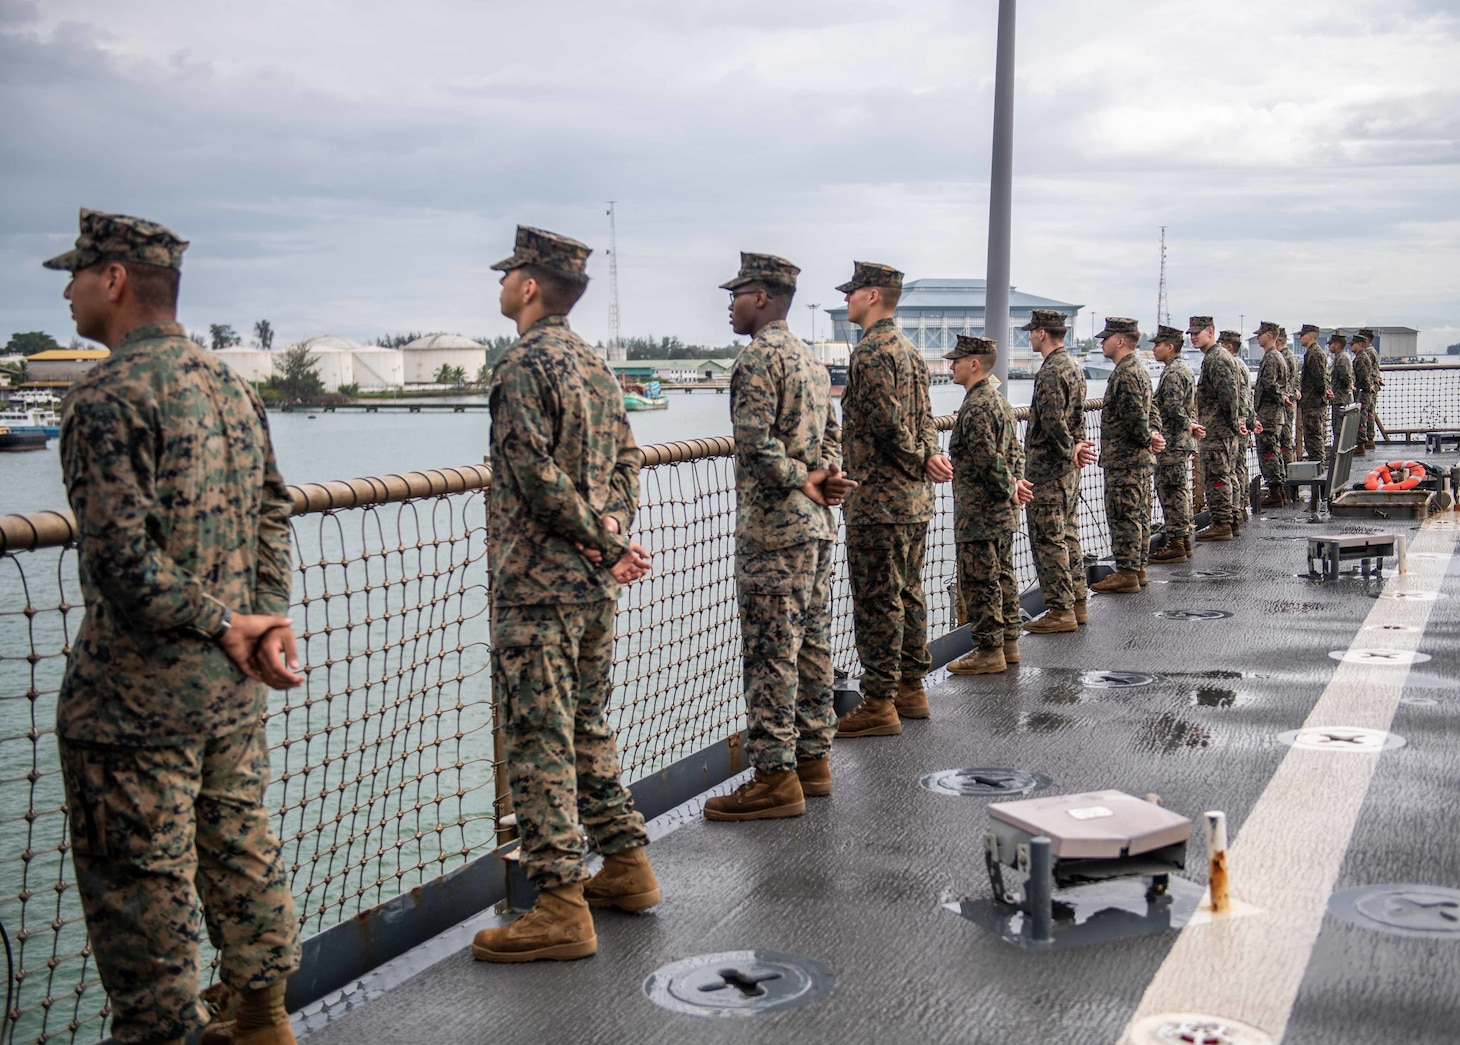 MAURA, Brunei (Oct. 10, 2019) Marines, assigned to the 11th Marine Expeditionary Unit (MEU), man the rails of the amphibious dock landing ship USS Harpers Ferry (LSD 49) as the ship arrives in Maura, Brunei, for Cooperation Afloat Readiness and Training (CARAT) Brunei. Harpers Ferry and elements of the 11th MEU are ashore in Brunei to perform day and night training in an urban environment and to enhance interoperability and partnership between the U.S. and Brunei during CARAT Brunei 2019.